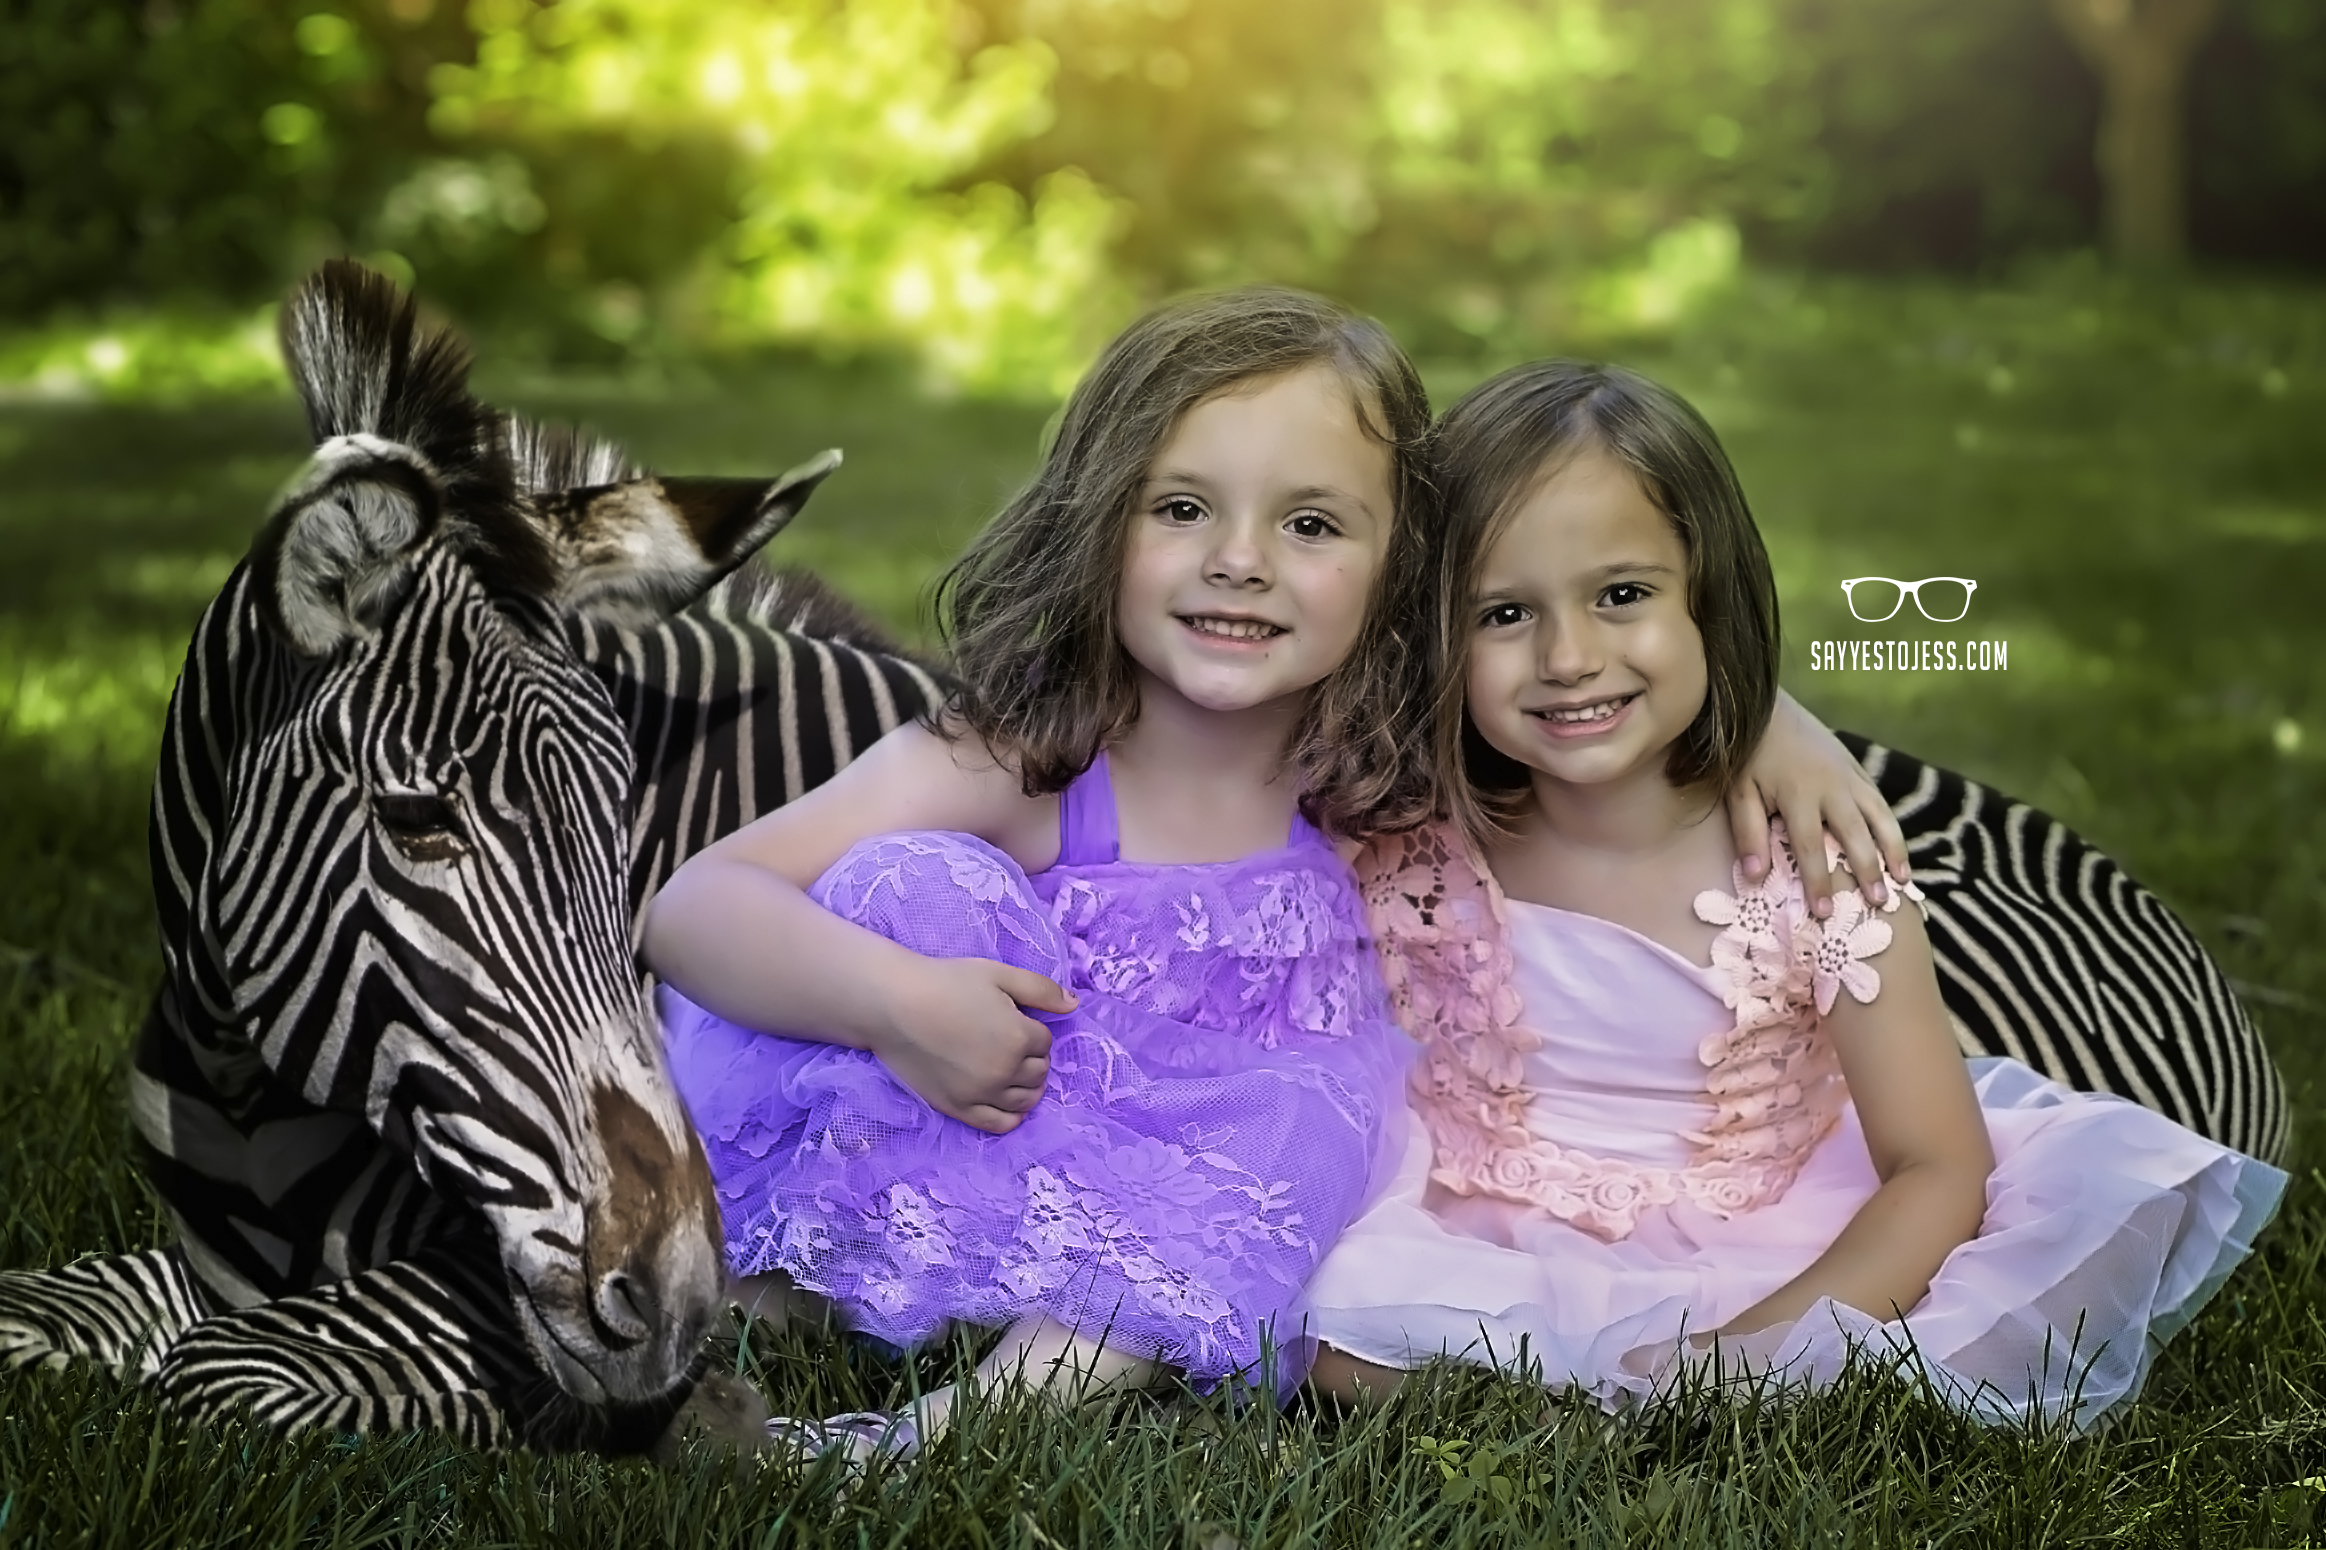 Little girls get photos done with Zebra by Cincinnati Ohio Family Photographer Jess Summers of Say Yes To Jess